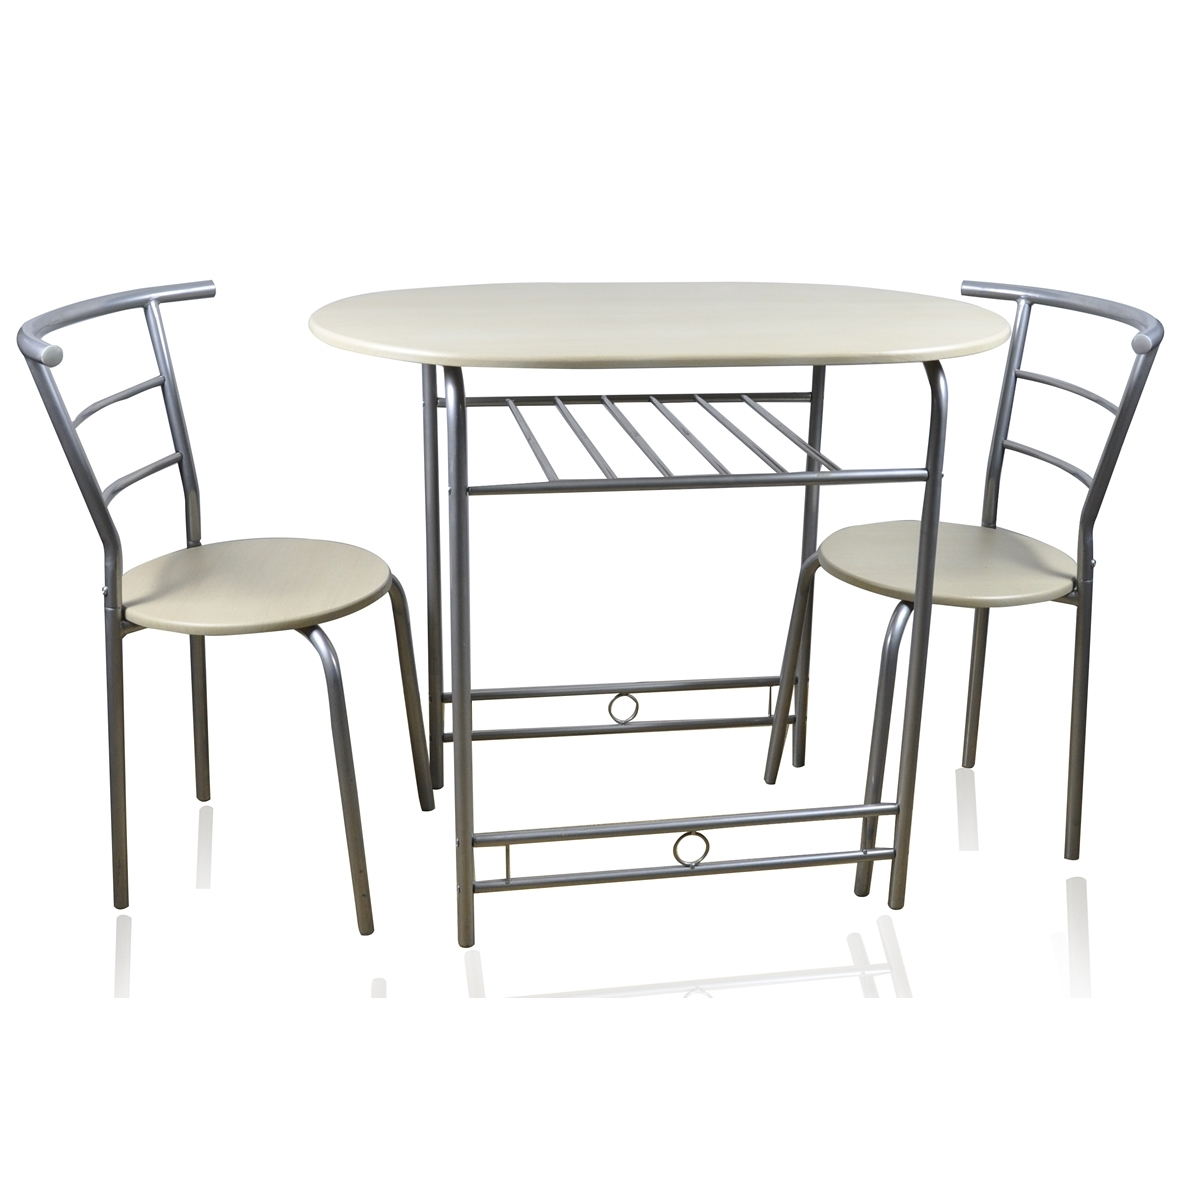 2 Seater Dining Table And Chairs Gallery Dining Modern Leather for Well-liked Two Seater Dining Tables And Chairs